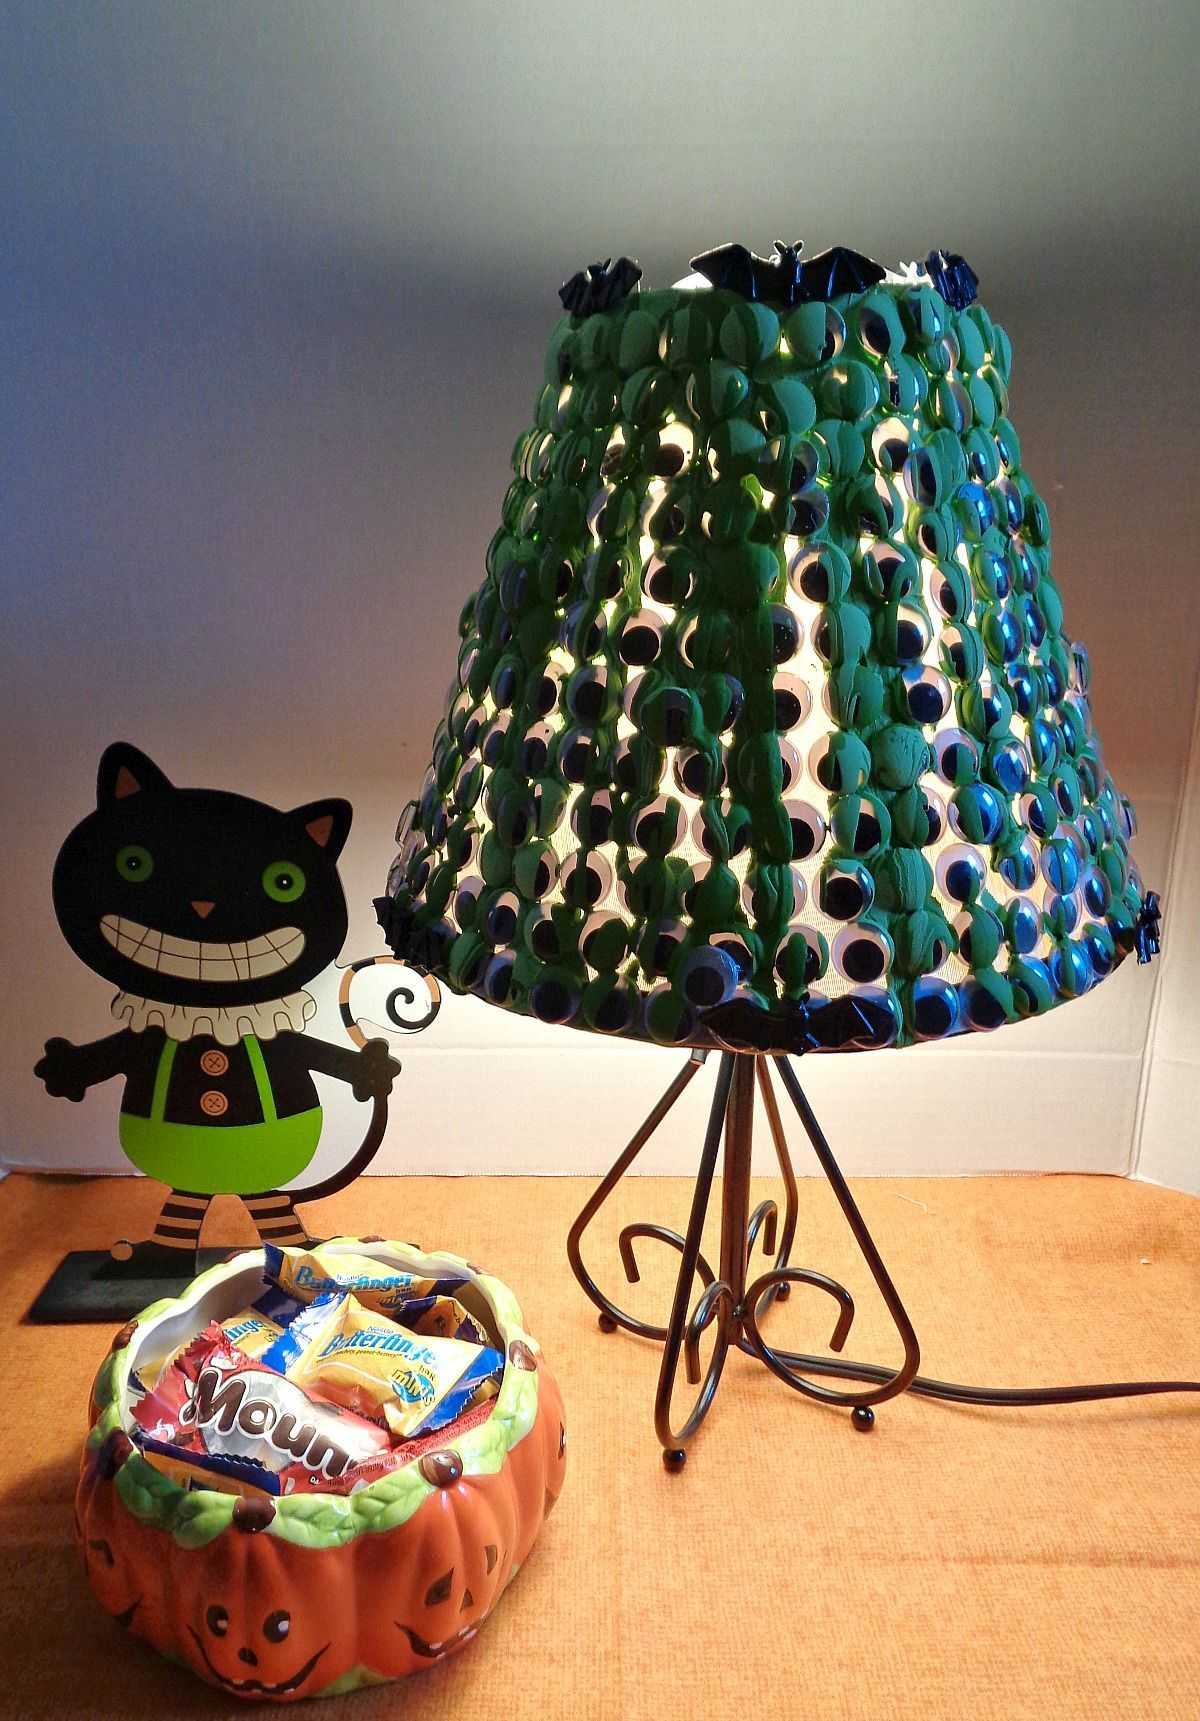 spooky-googly-eye-lampshade-for-living-room